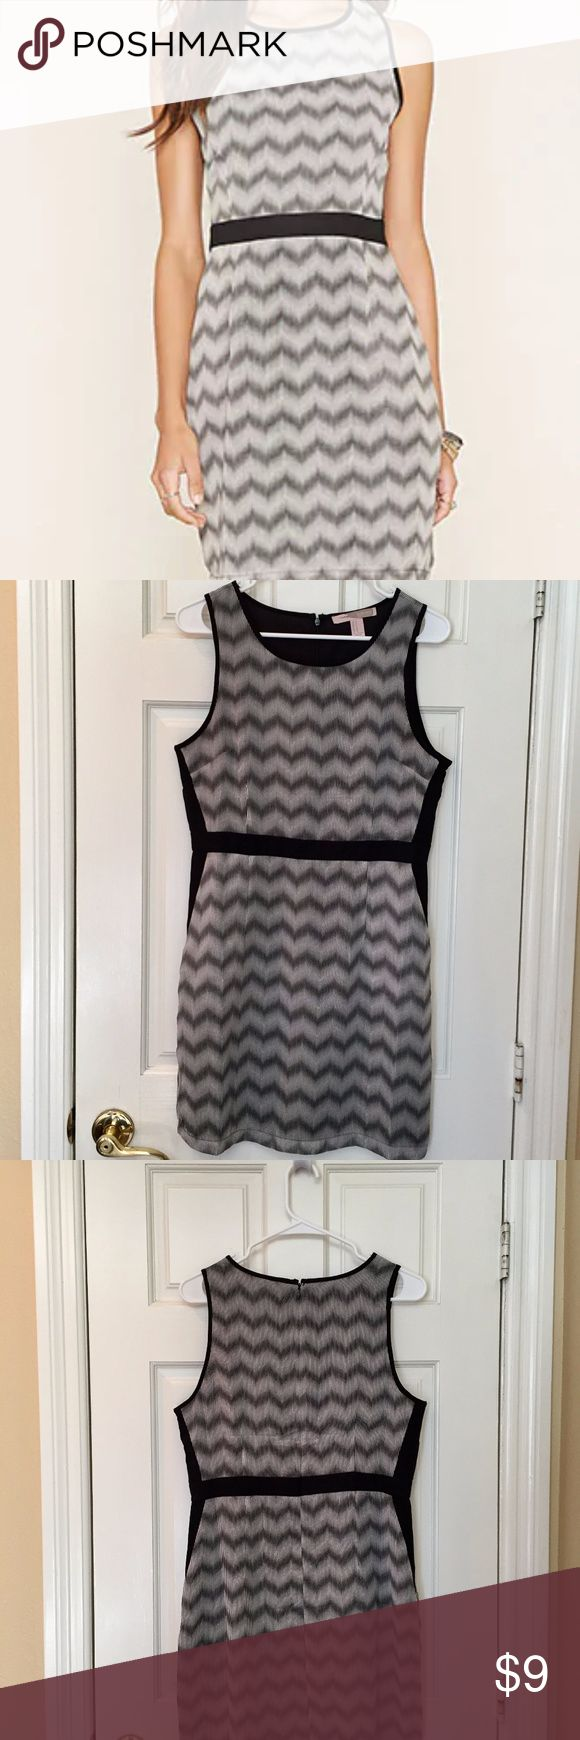 Forever 21 - Colorblocked Chevron Print Dress - M Colorblocked Chevron Print Dress Color: Black /Beige Condition: new without tags Size: Medium Forever 21 Dresses Mini